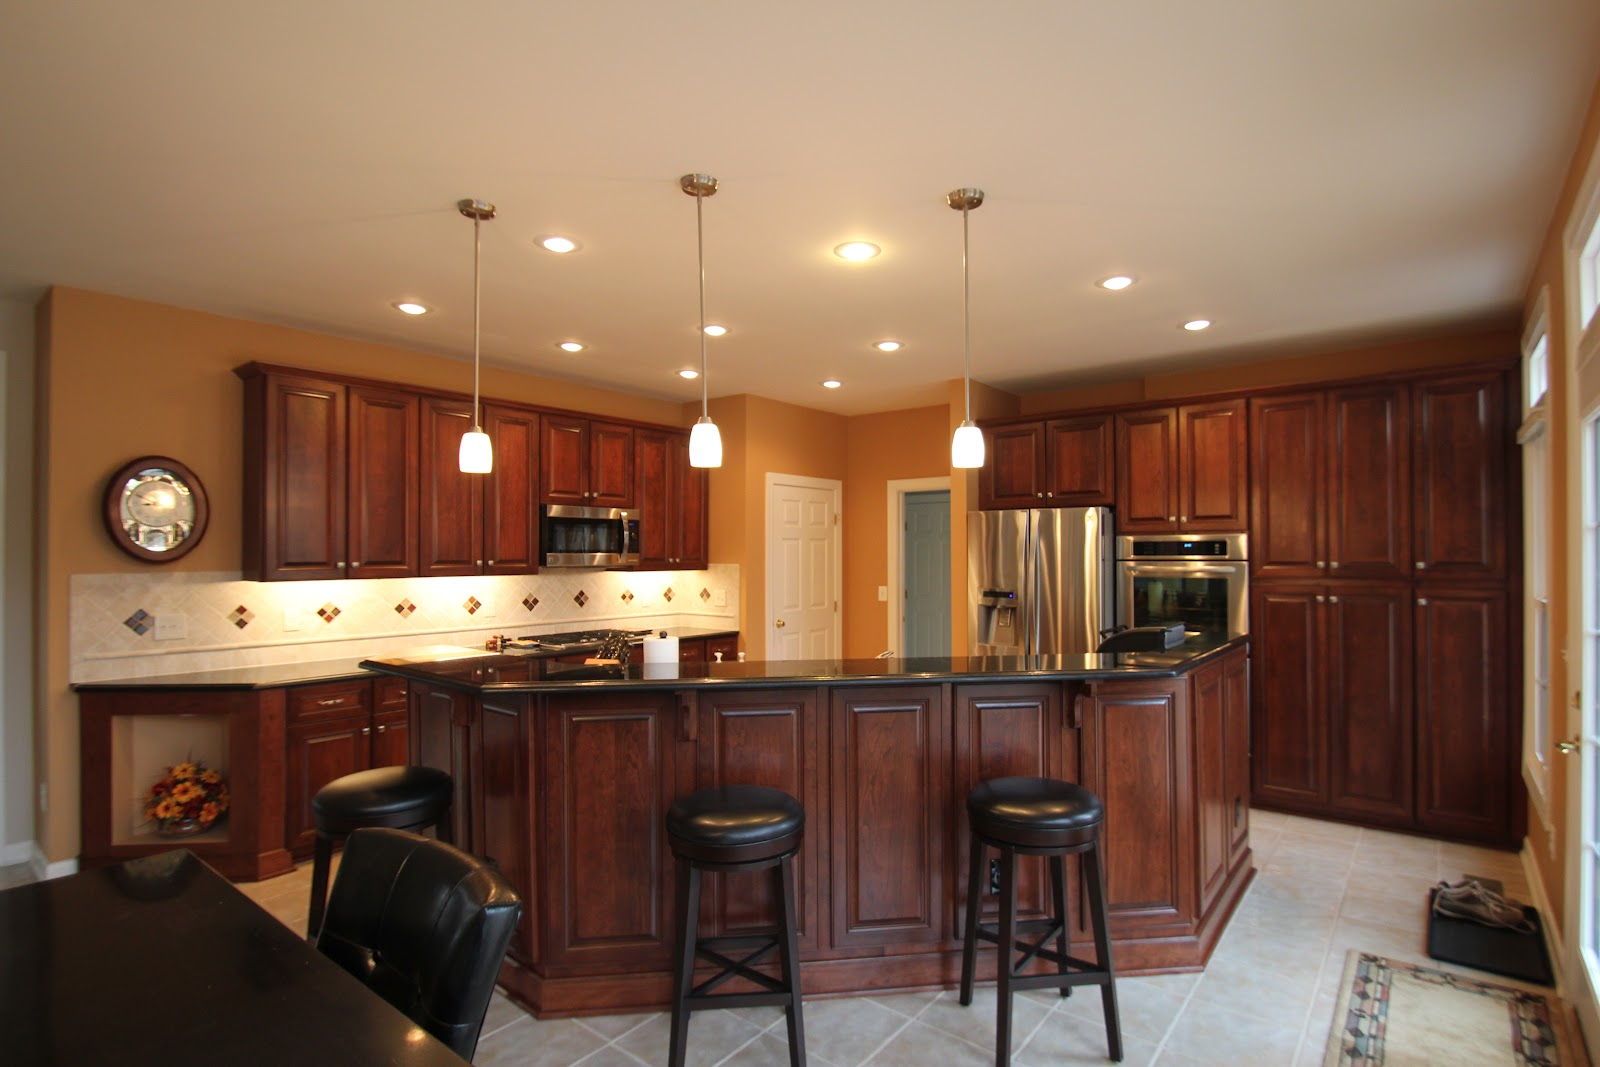 Signature Kitchens Woodcrafters Realtors Seeking